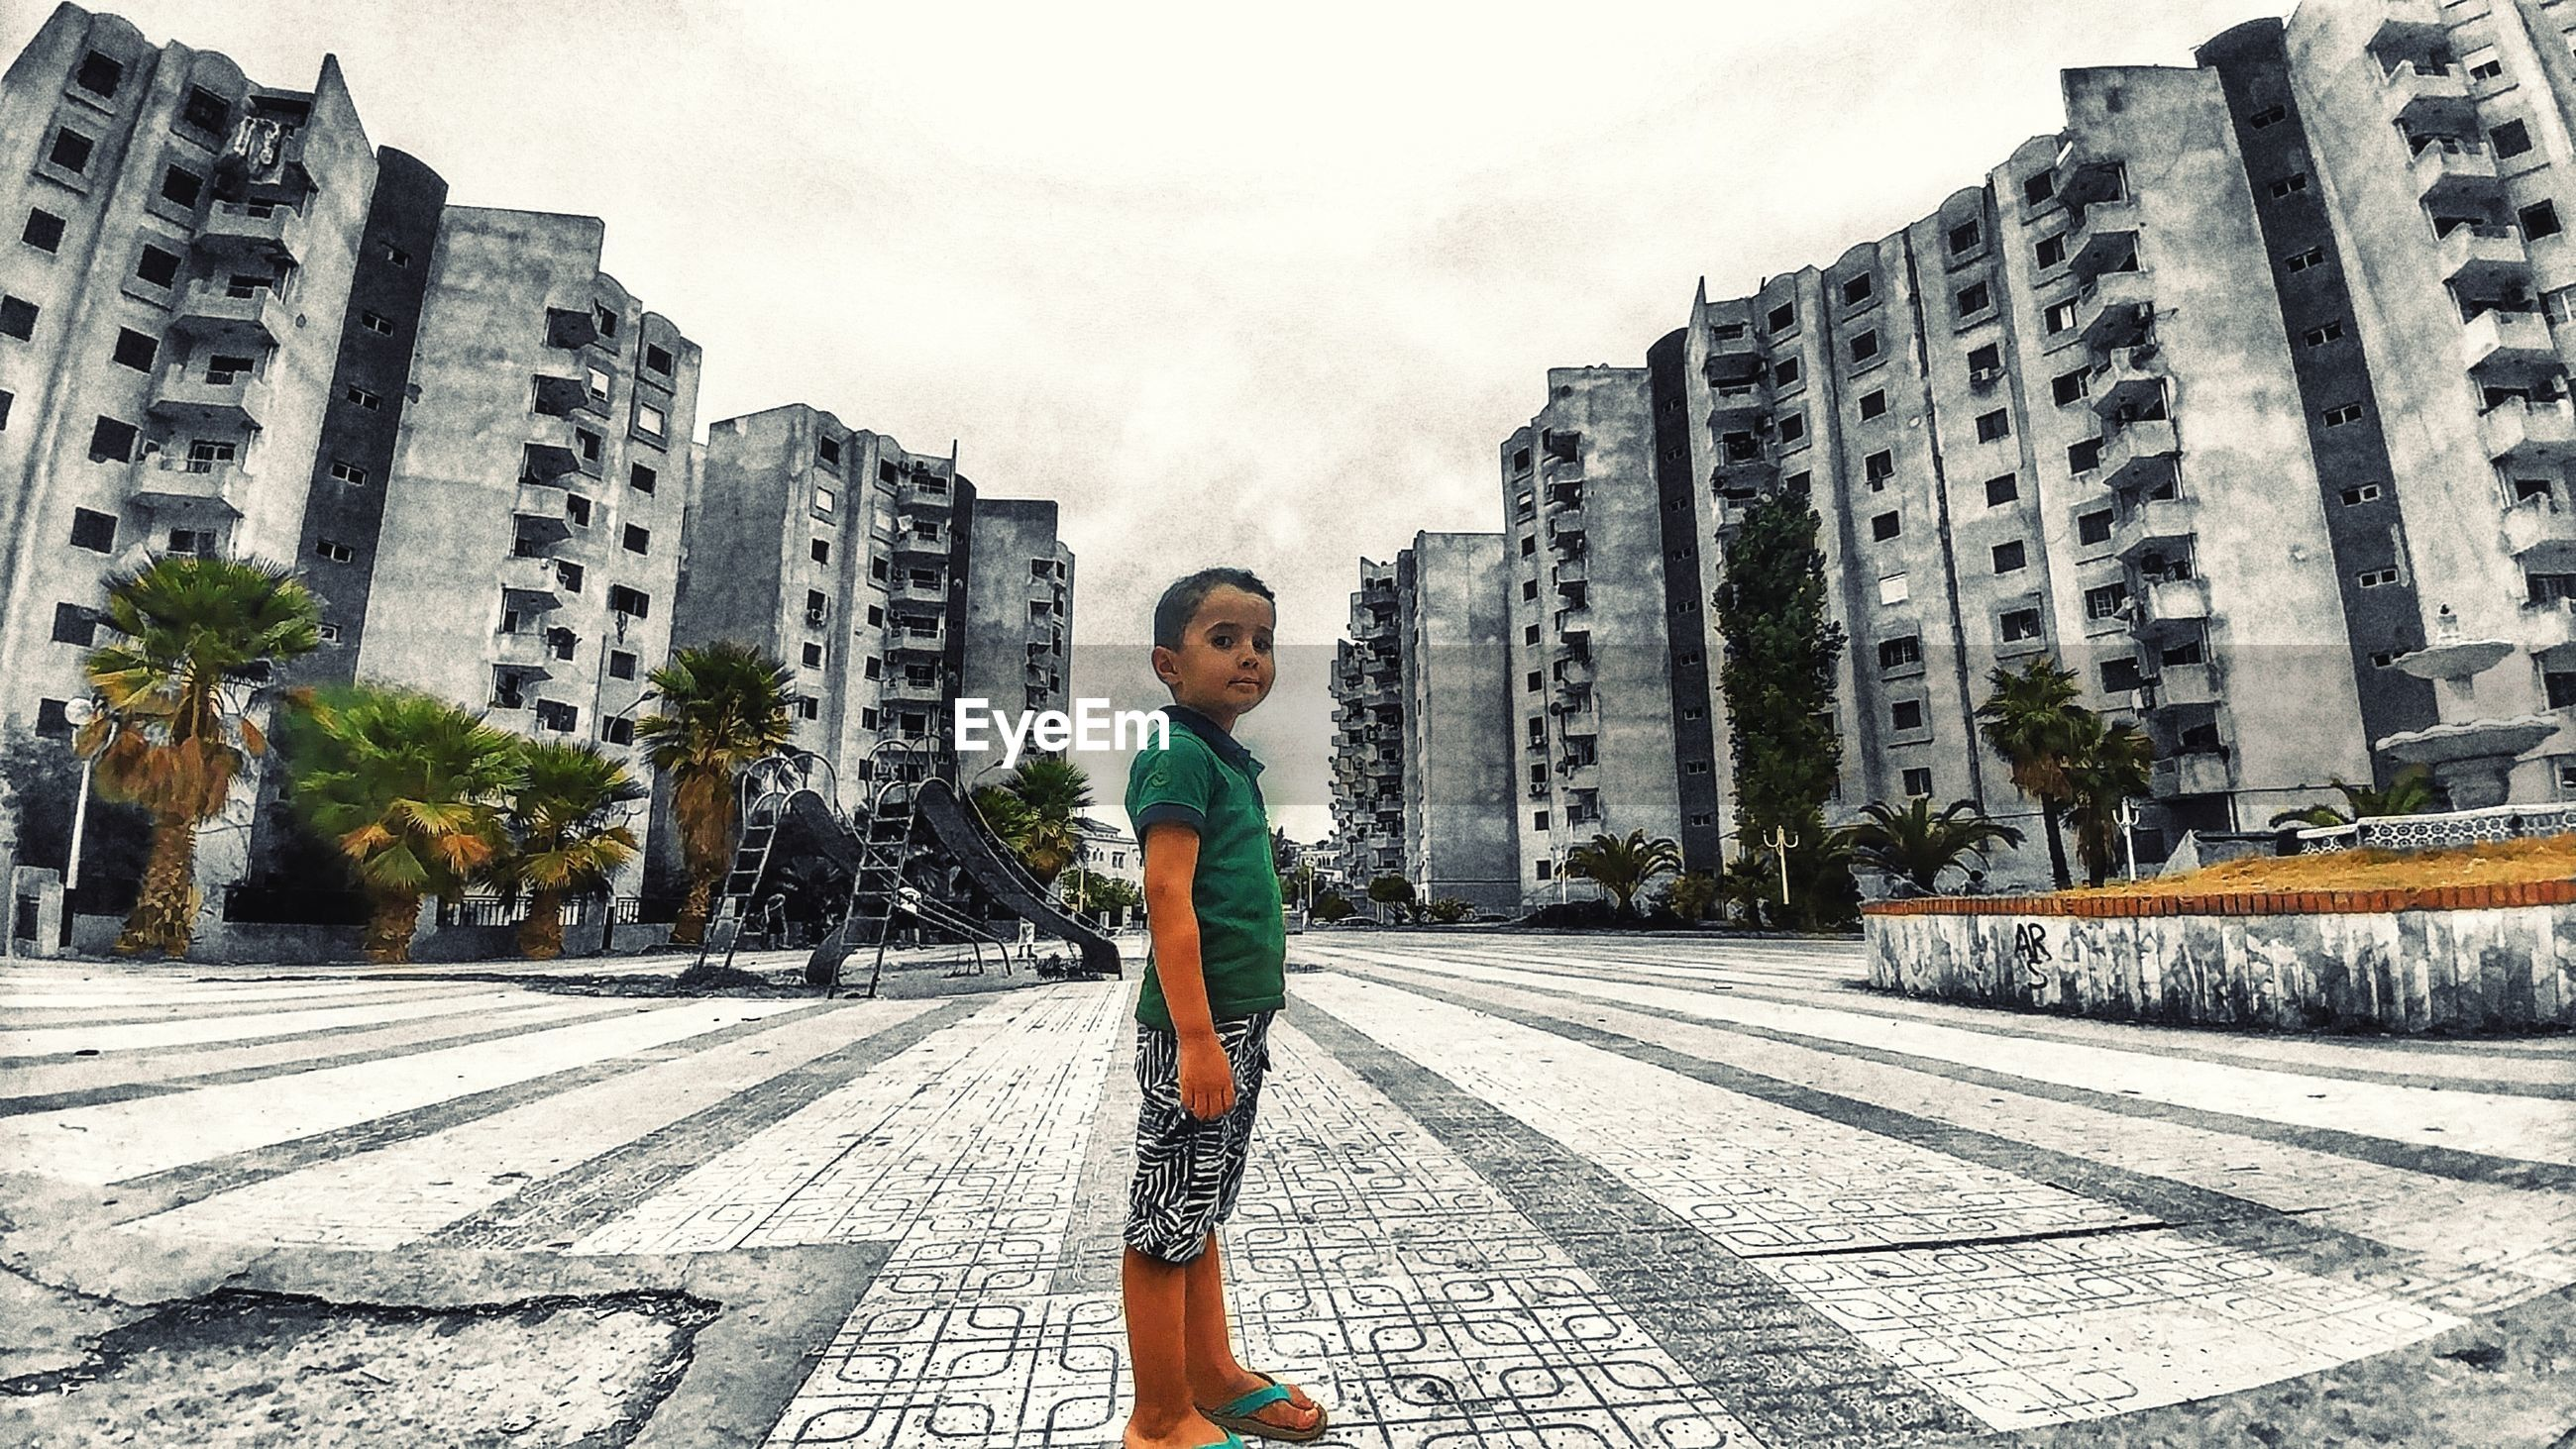 Portrait of boy standing against buildings in city